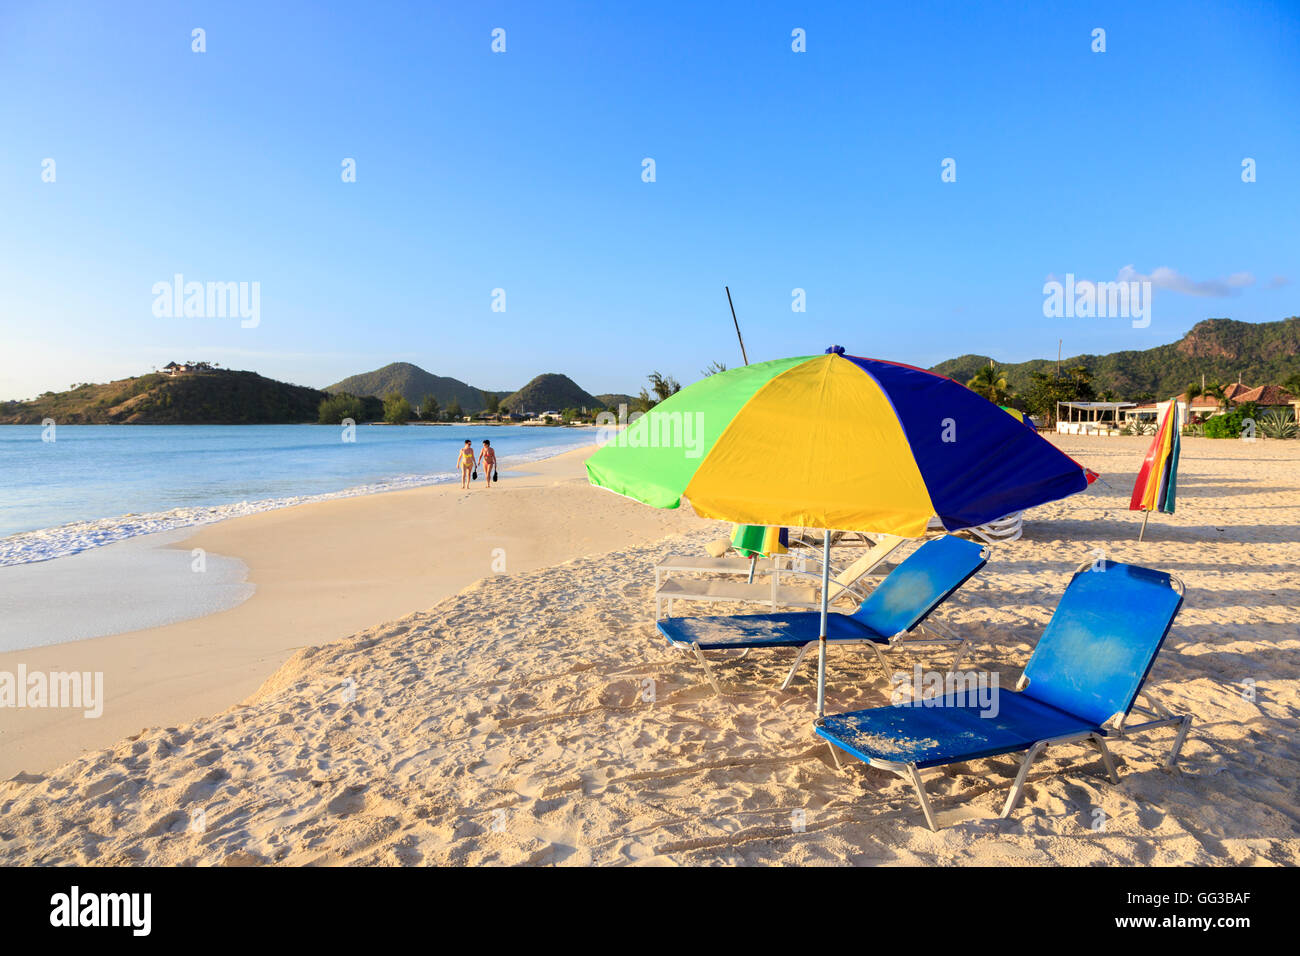 Sun parasol and loungers on golden sand beach at Jolly Harbour, south-west Antigua on a sunny day with blue sky - Stock Image